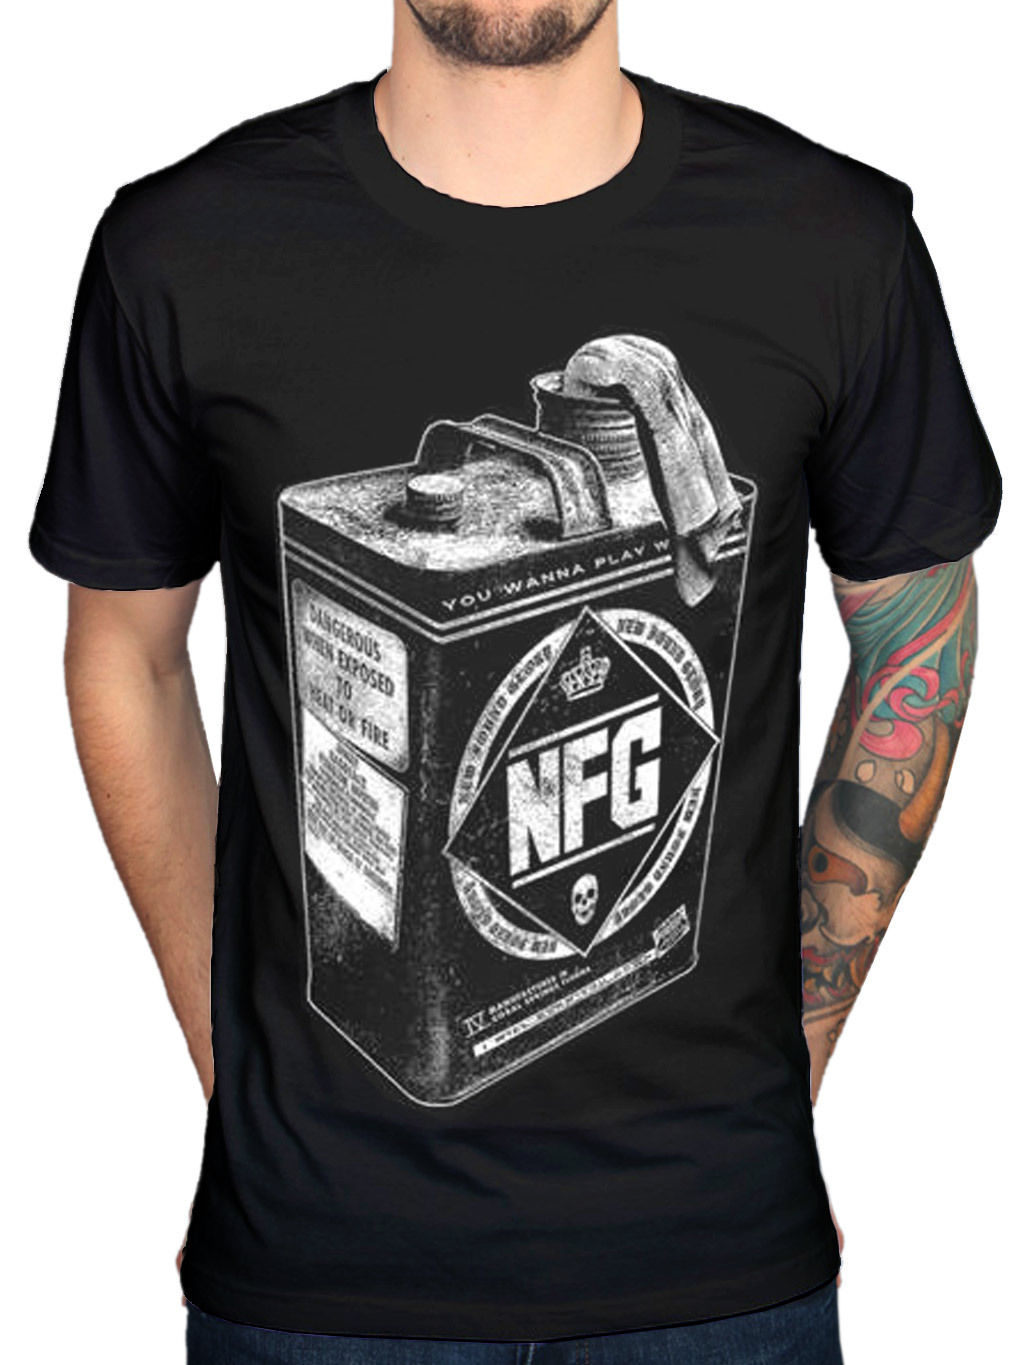 Official New Found Glory Pyro T Shirt New Pop Punk Rock Band Merchandise